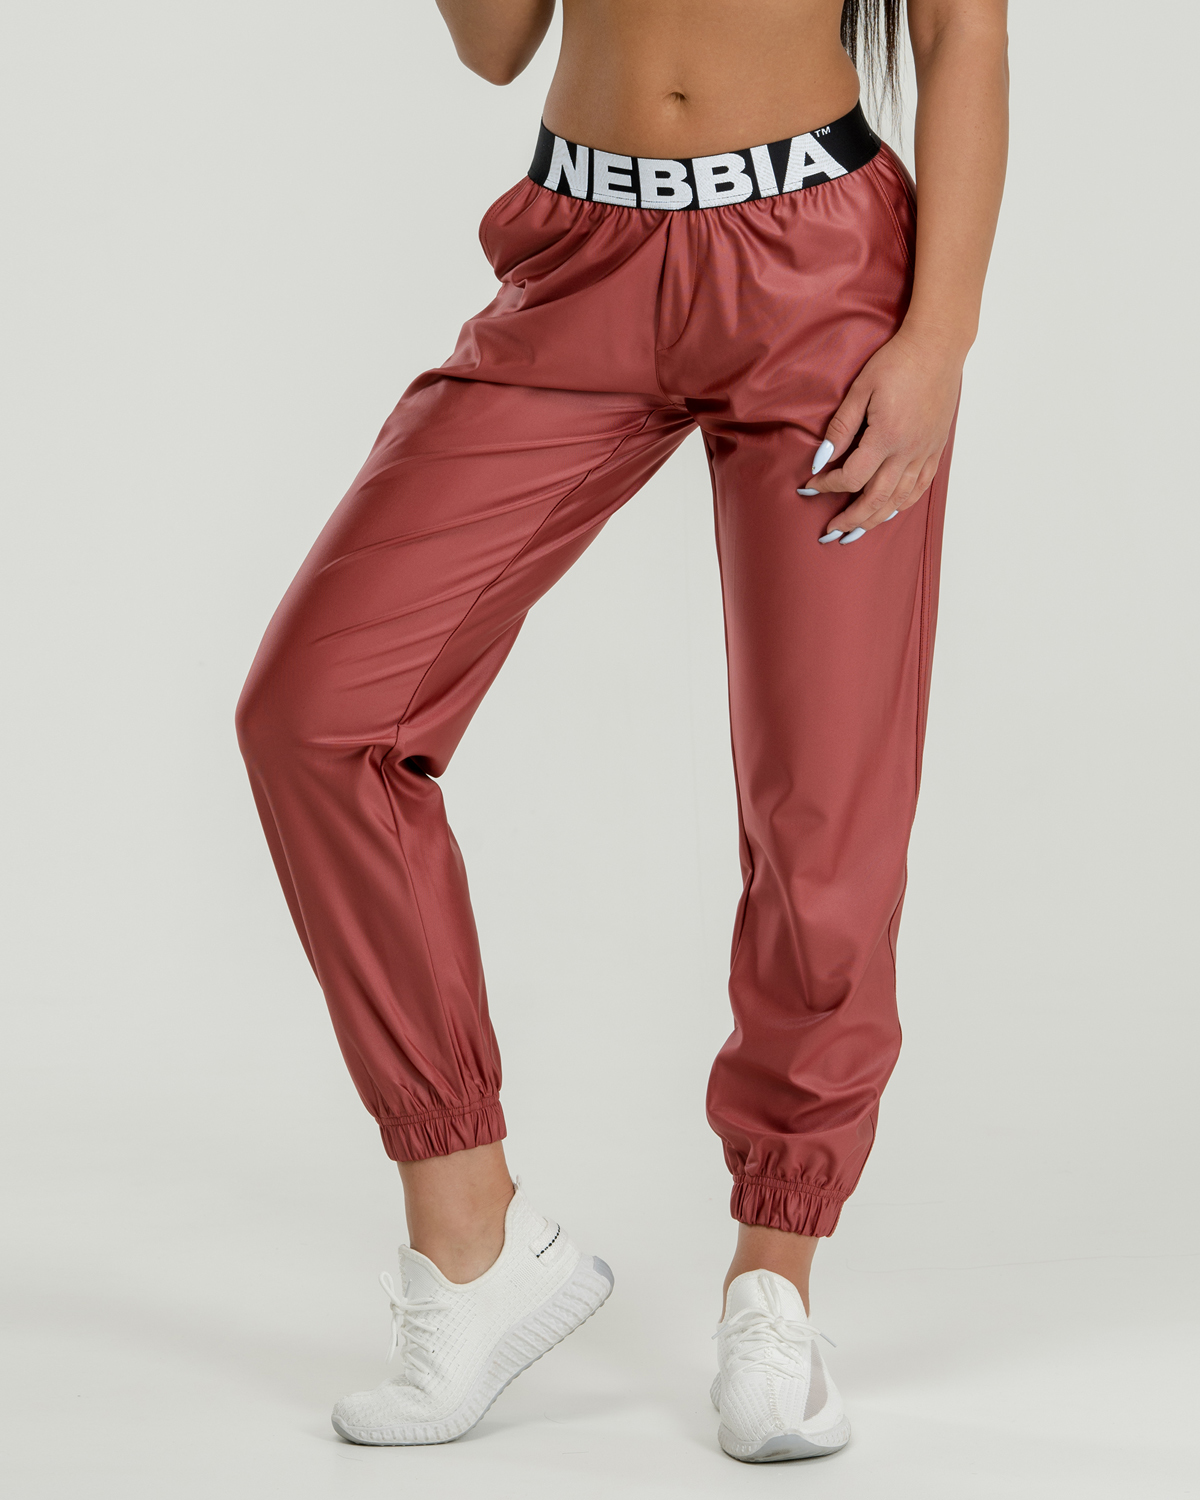 Брюки женские Nebbia Sports Drop Crotch pants 529 peach